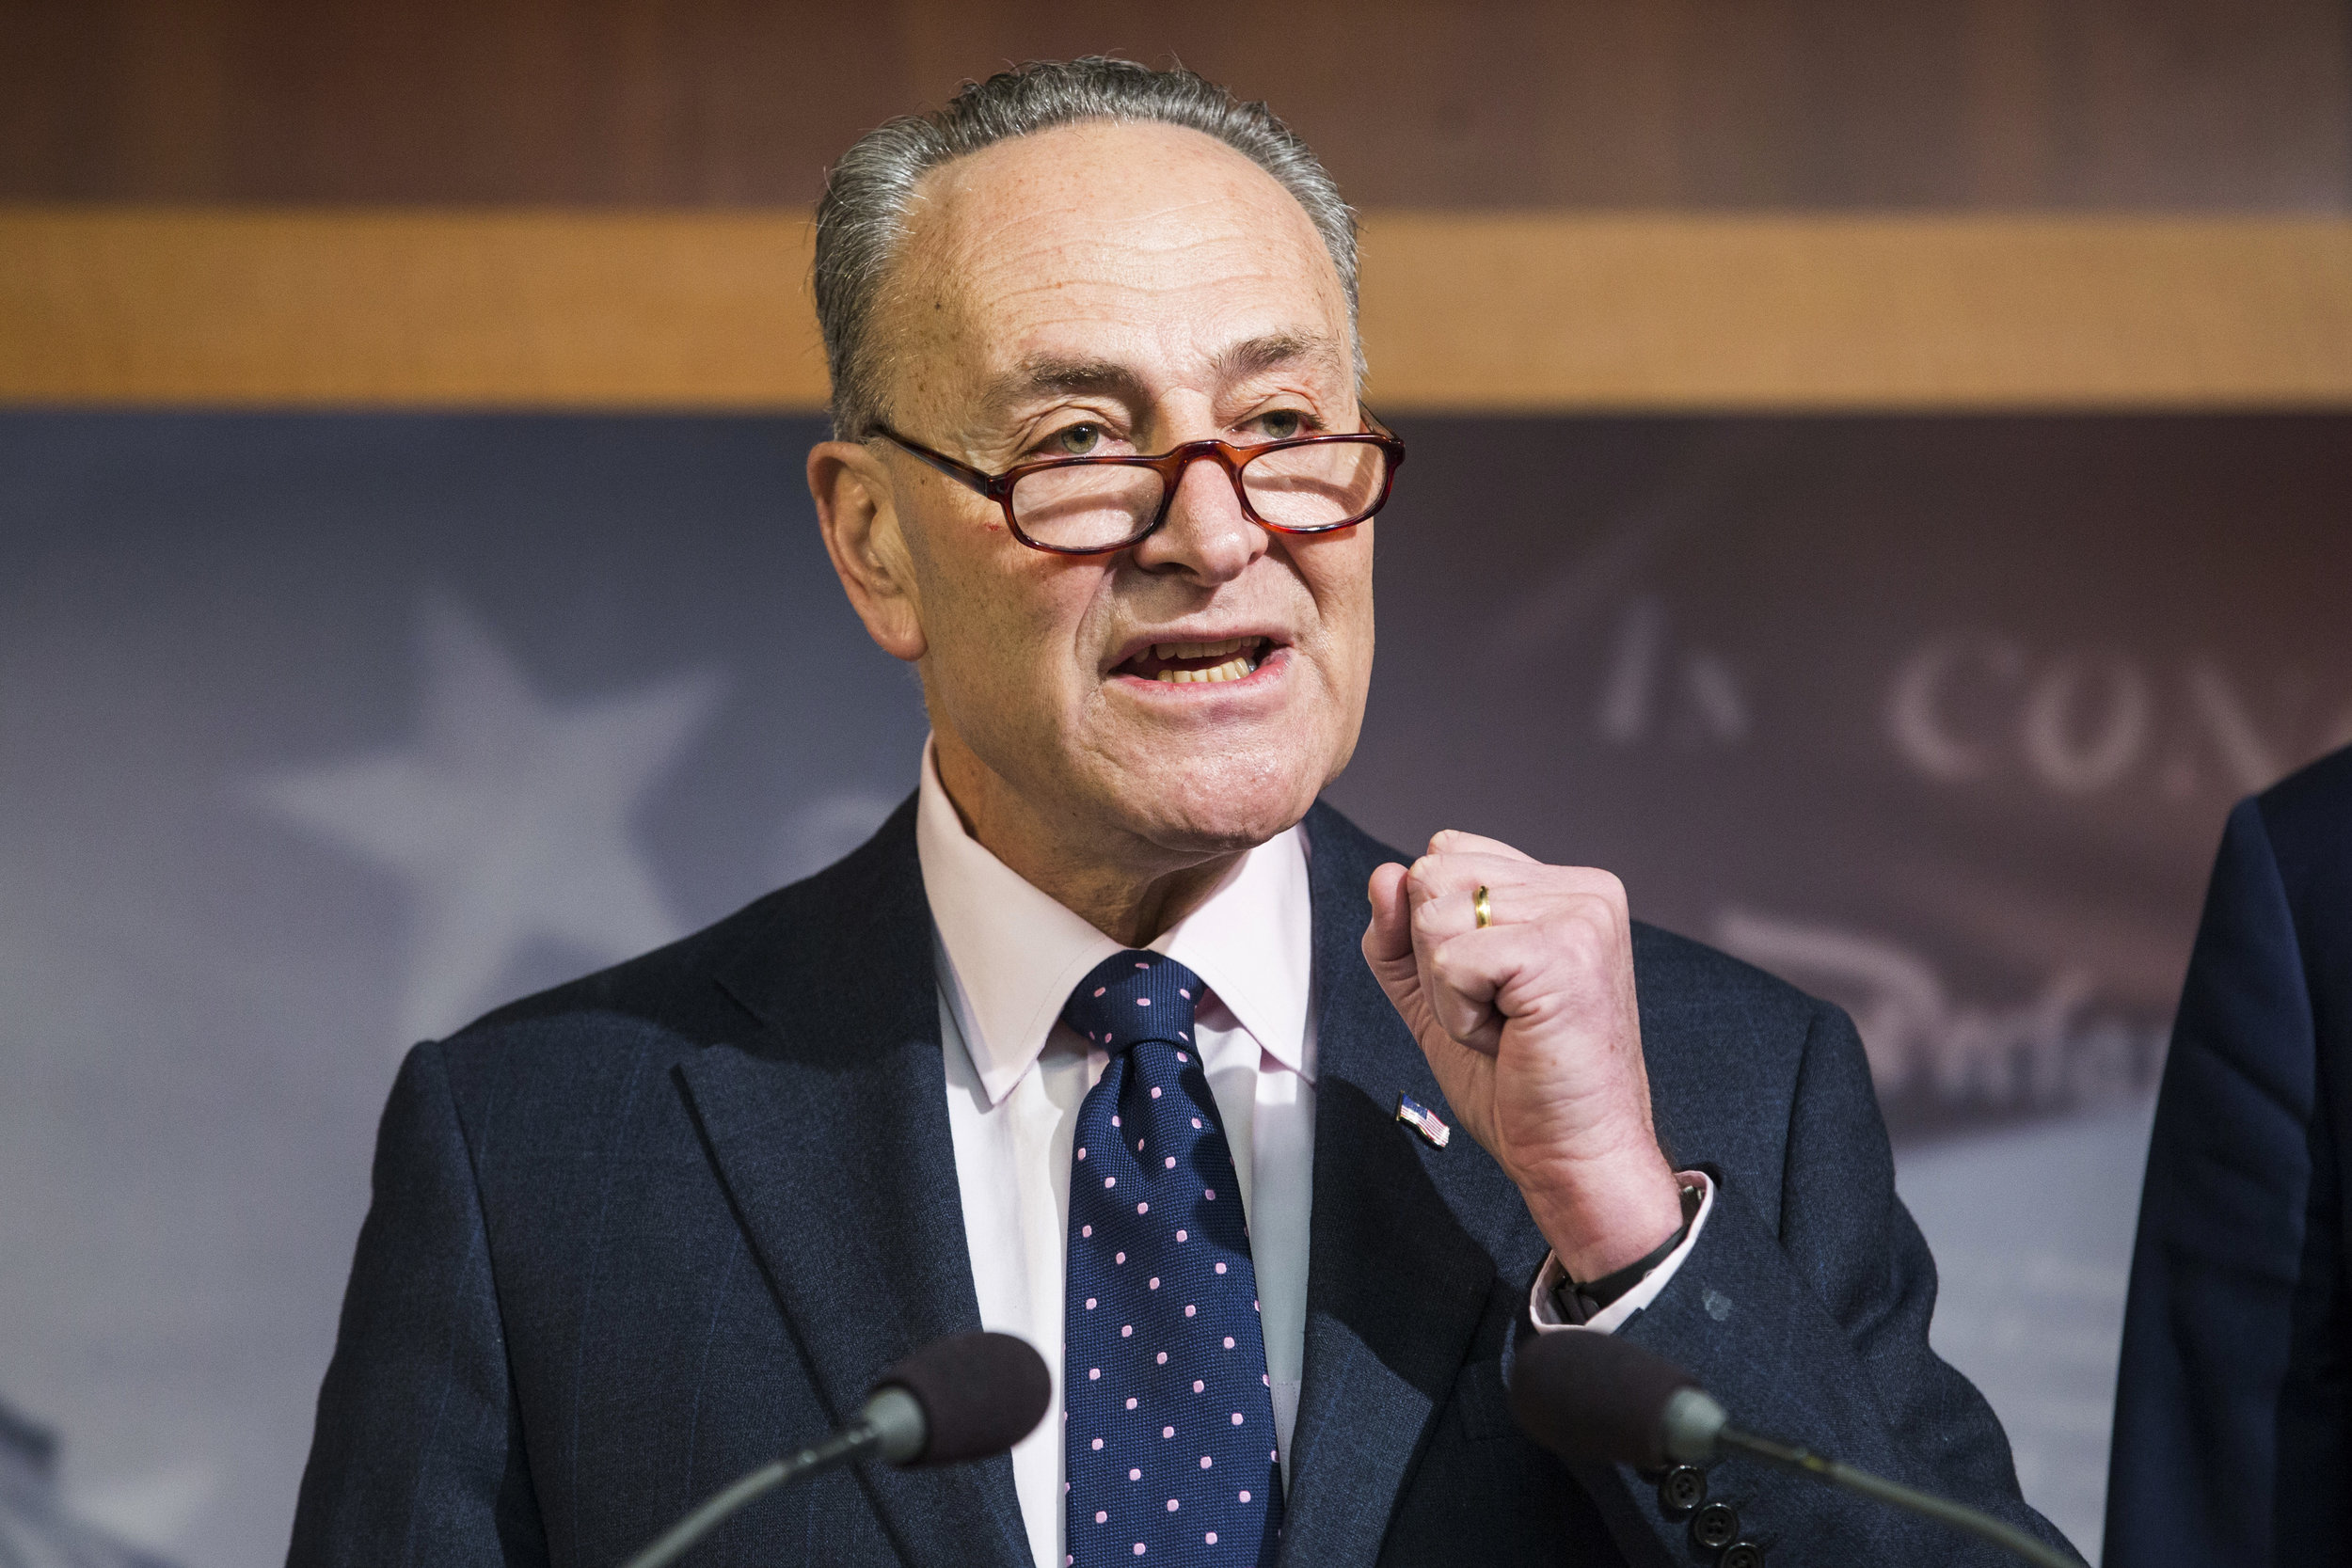 In this Jan. 5, 2017, photo, Senate Minority Leader Charles Schumer speaks during a news conference on Capitol Hill in Washington. According to opinion editor Chris Sacco, Democrats must make sure that, like every building he has every purchased, all of Trump's actions have his name emblazoned upon them in blatant type.(AP Photo/Zach Gibson, File)